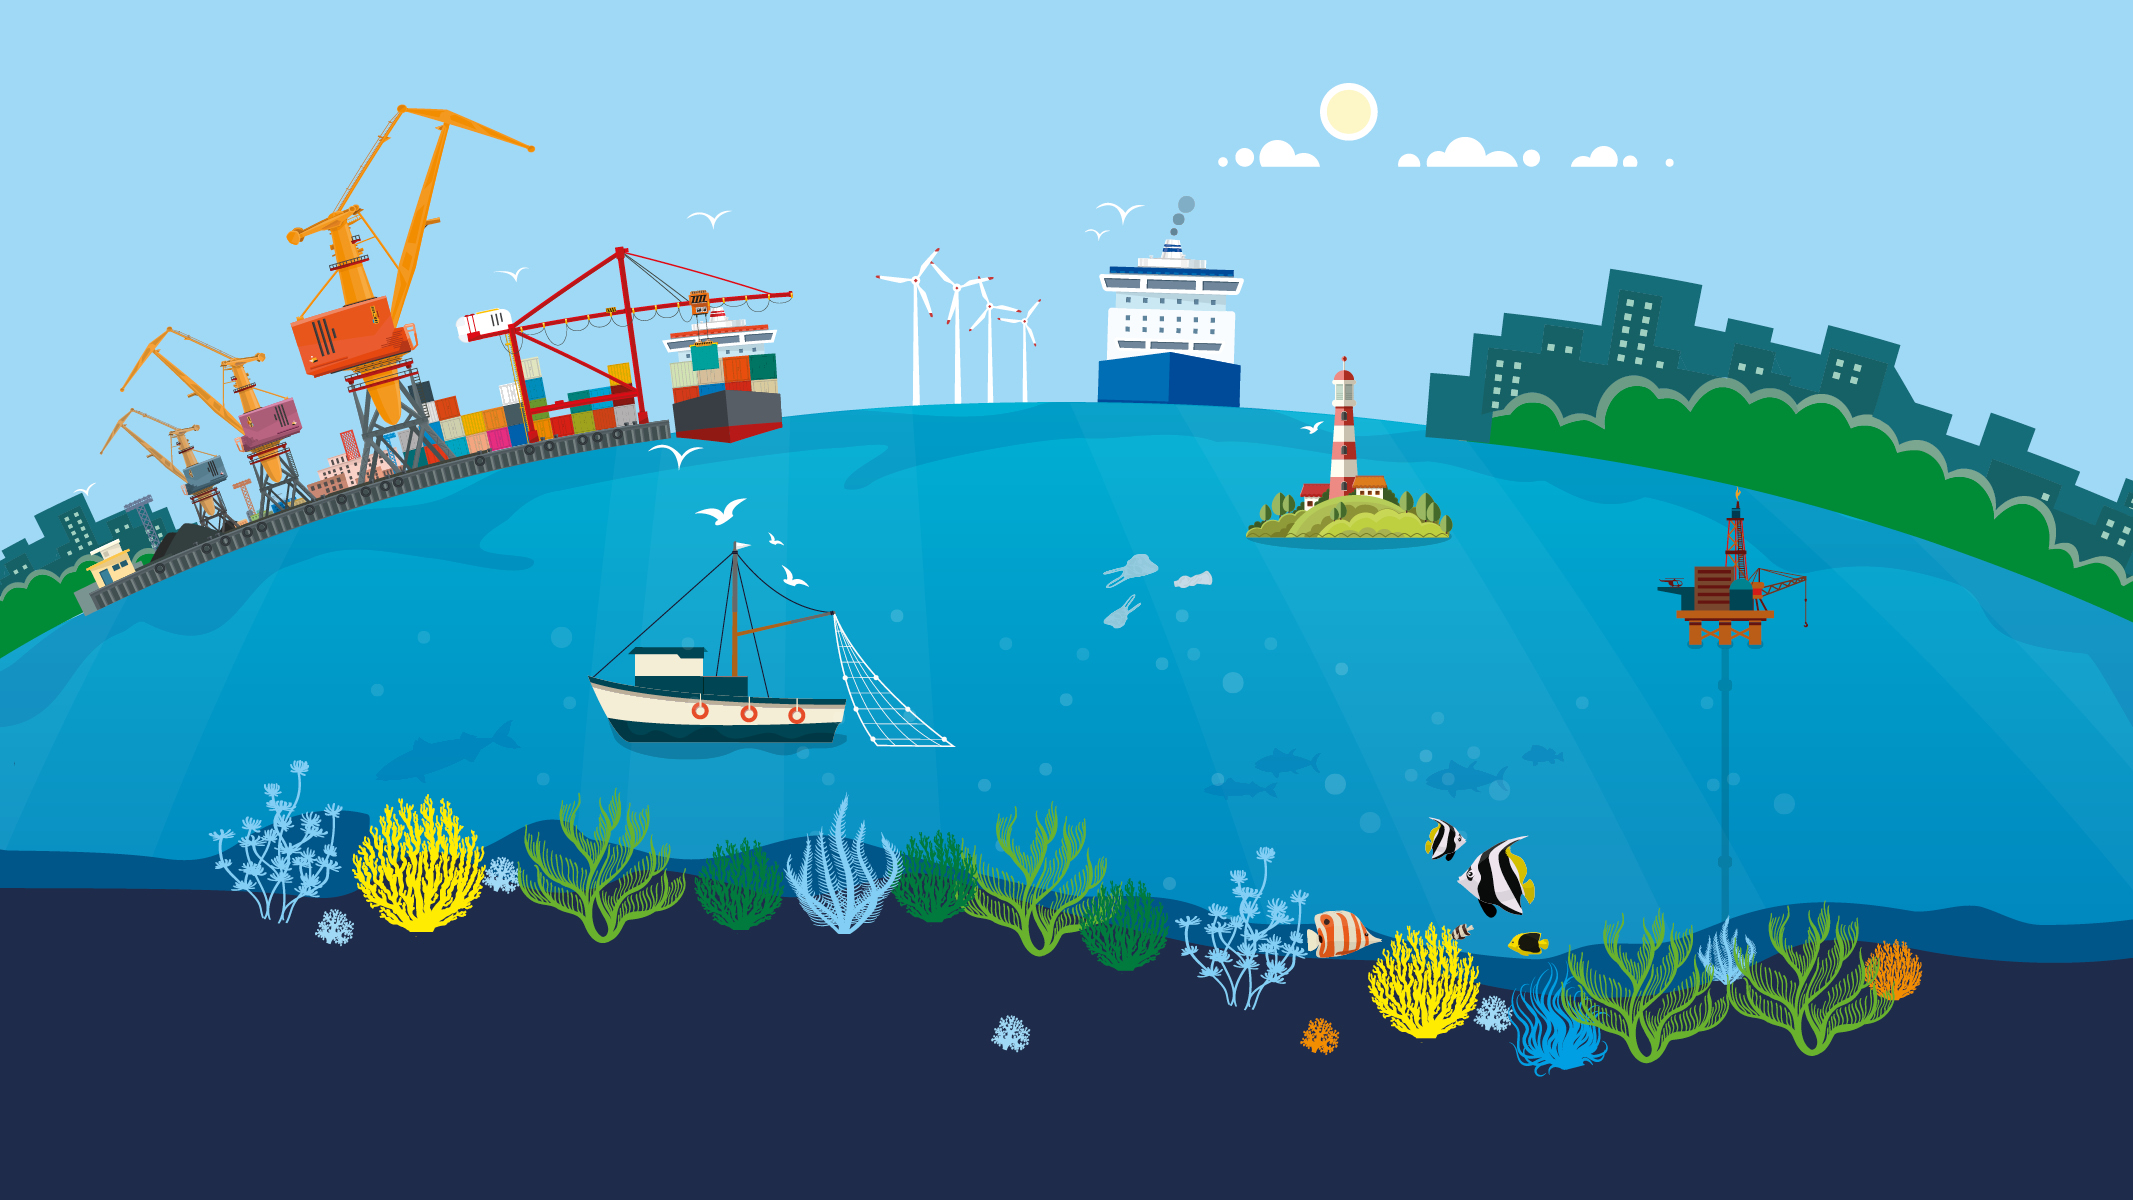 Future of the blue planet: Parliament conference on oceans